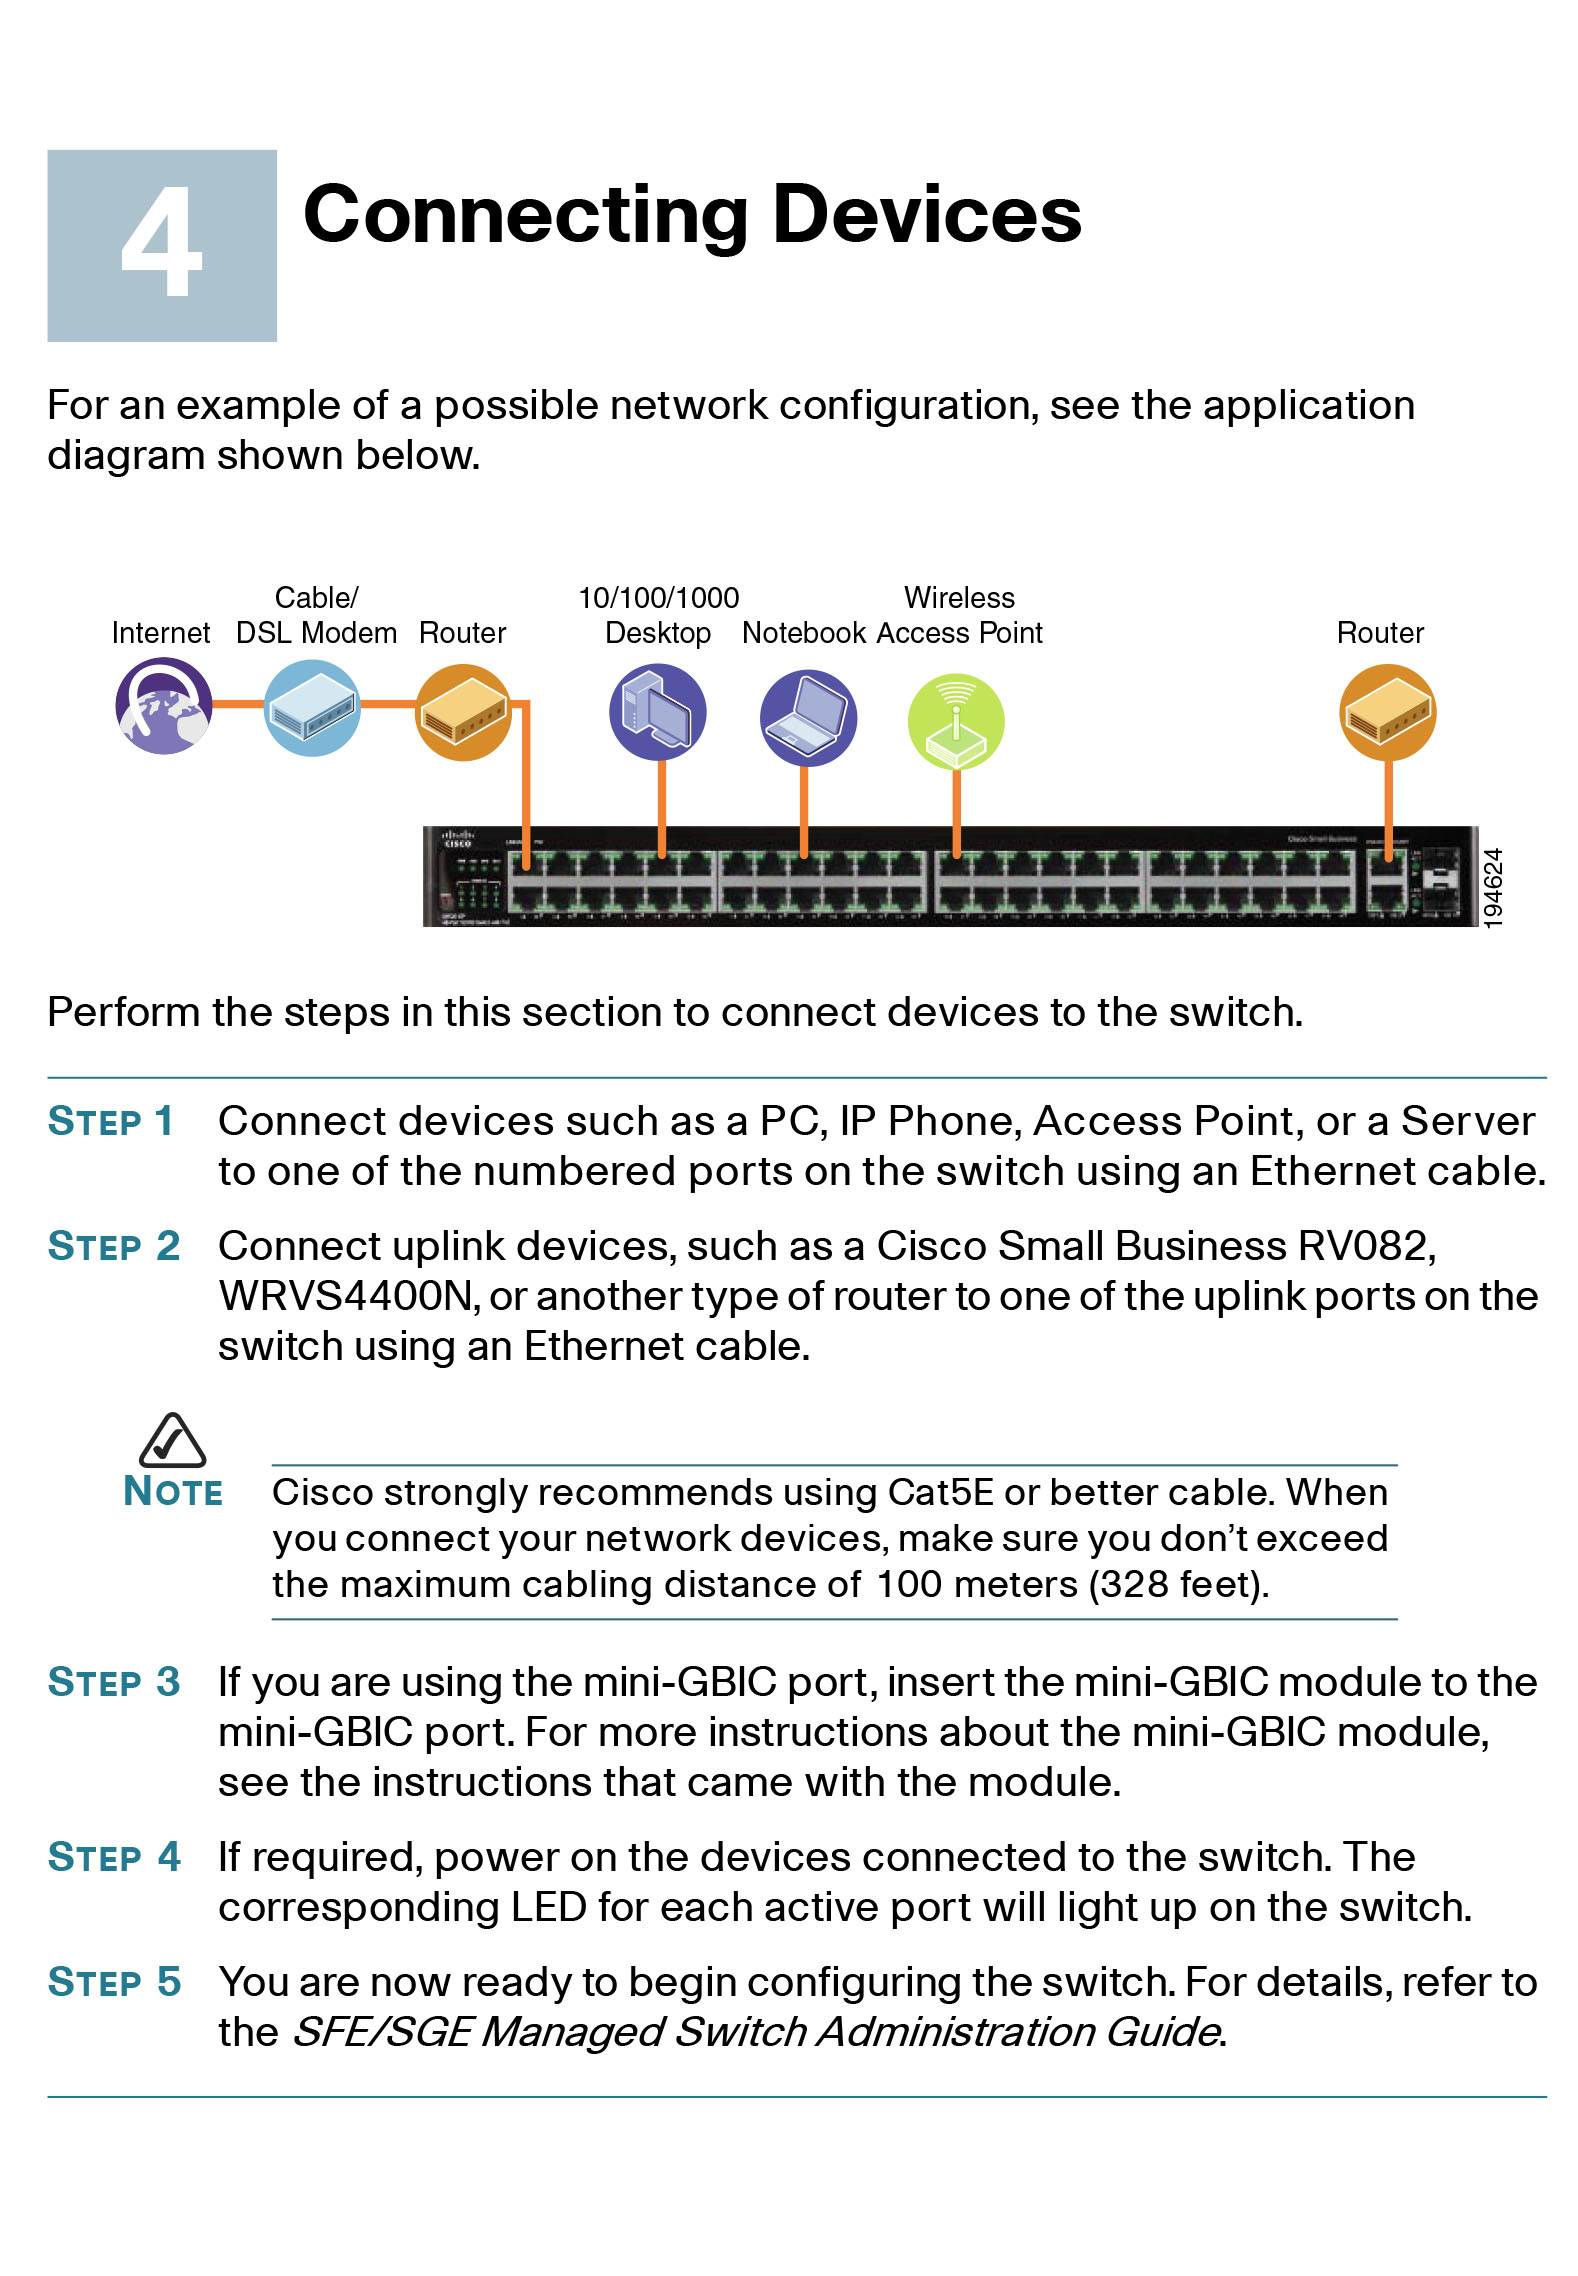 Cisco Small Business SFE/SGE Managed Switch  Quick Start Guide: bga68